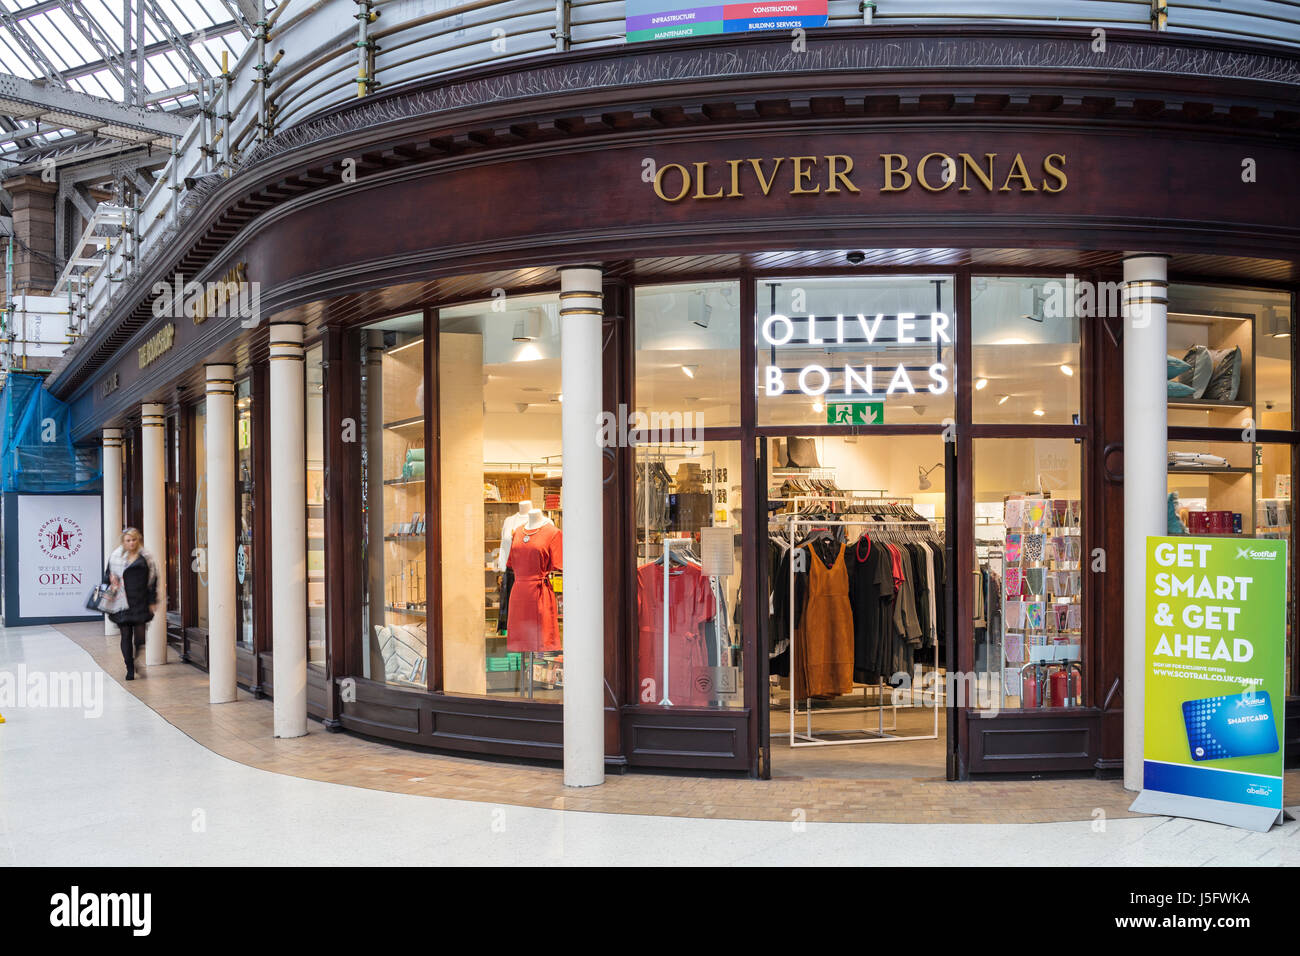 Oliver Bonas Glasgow Central Station - Stock Image